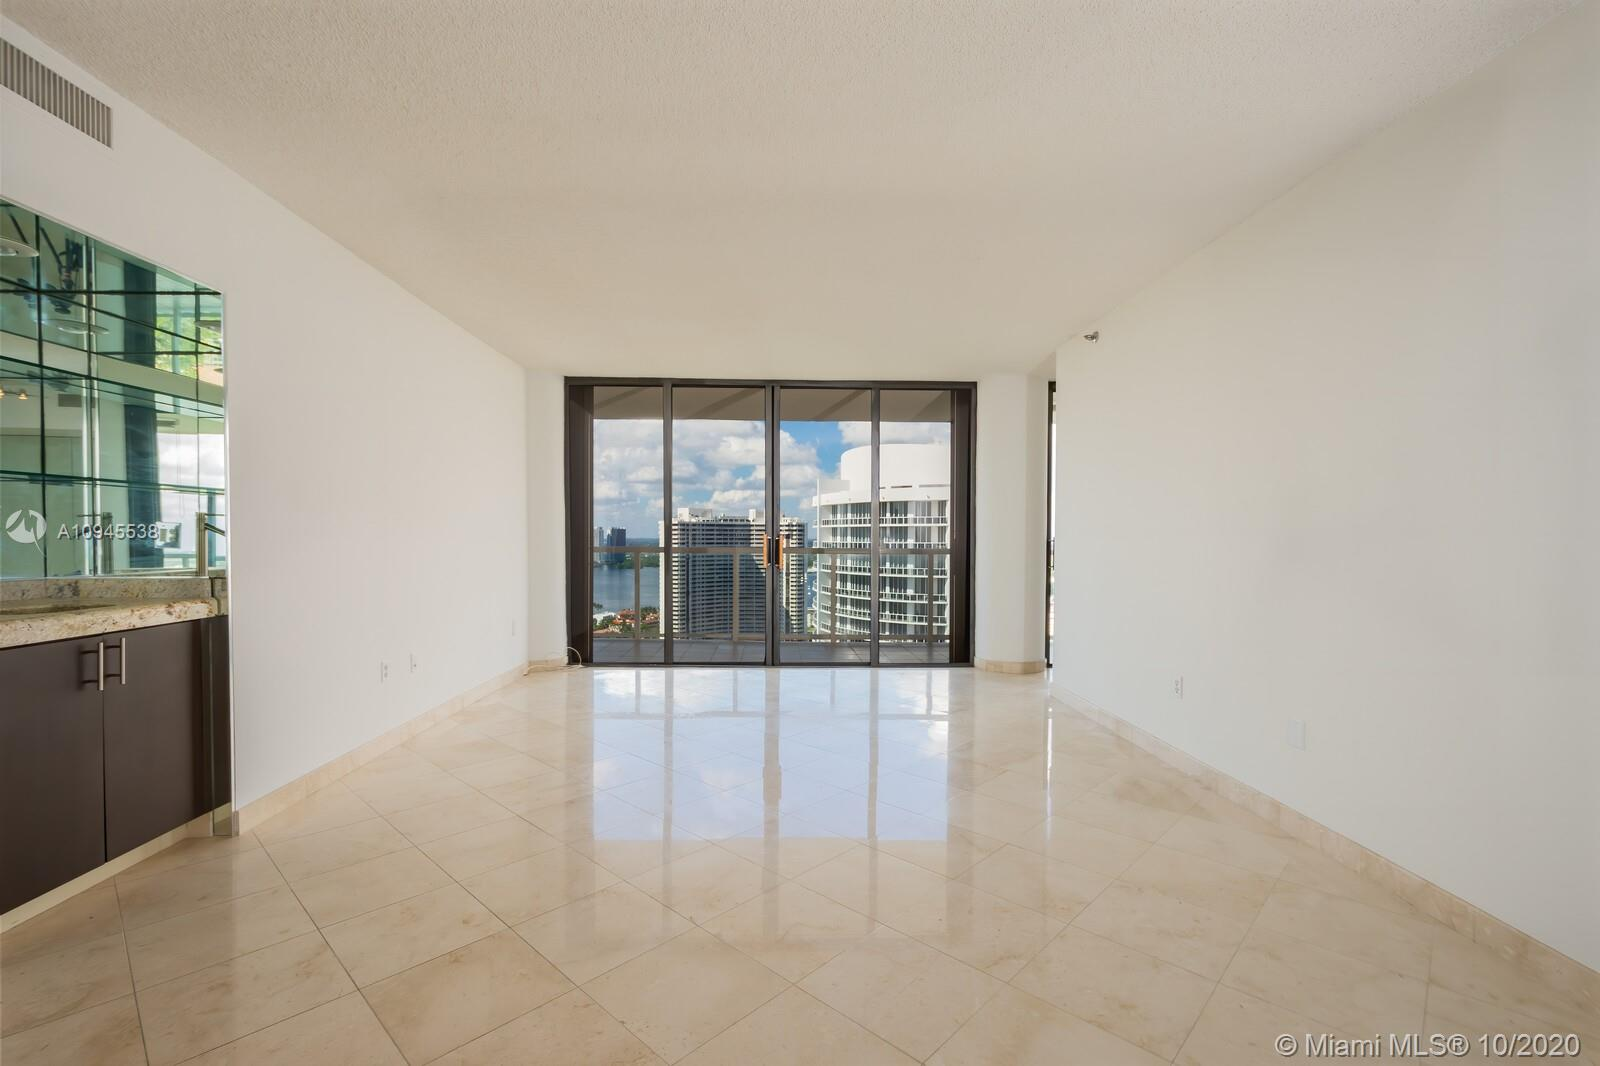 4000 Williams Island #2903 - 4000 Island Blvd #2903, Aventura, FL 33160